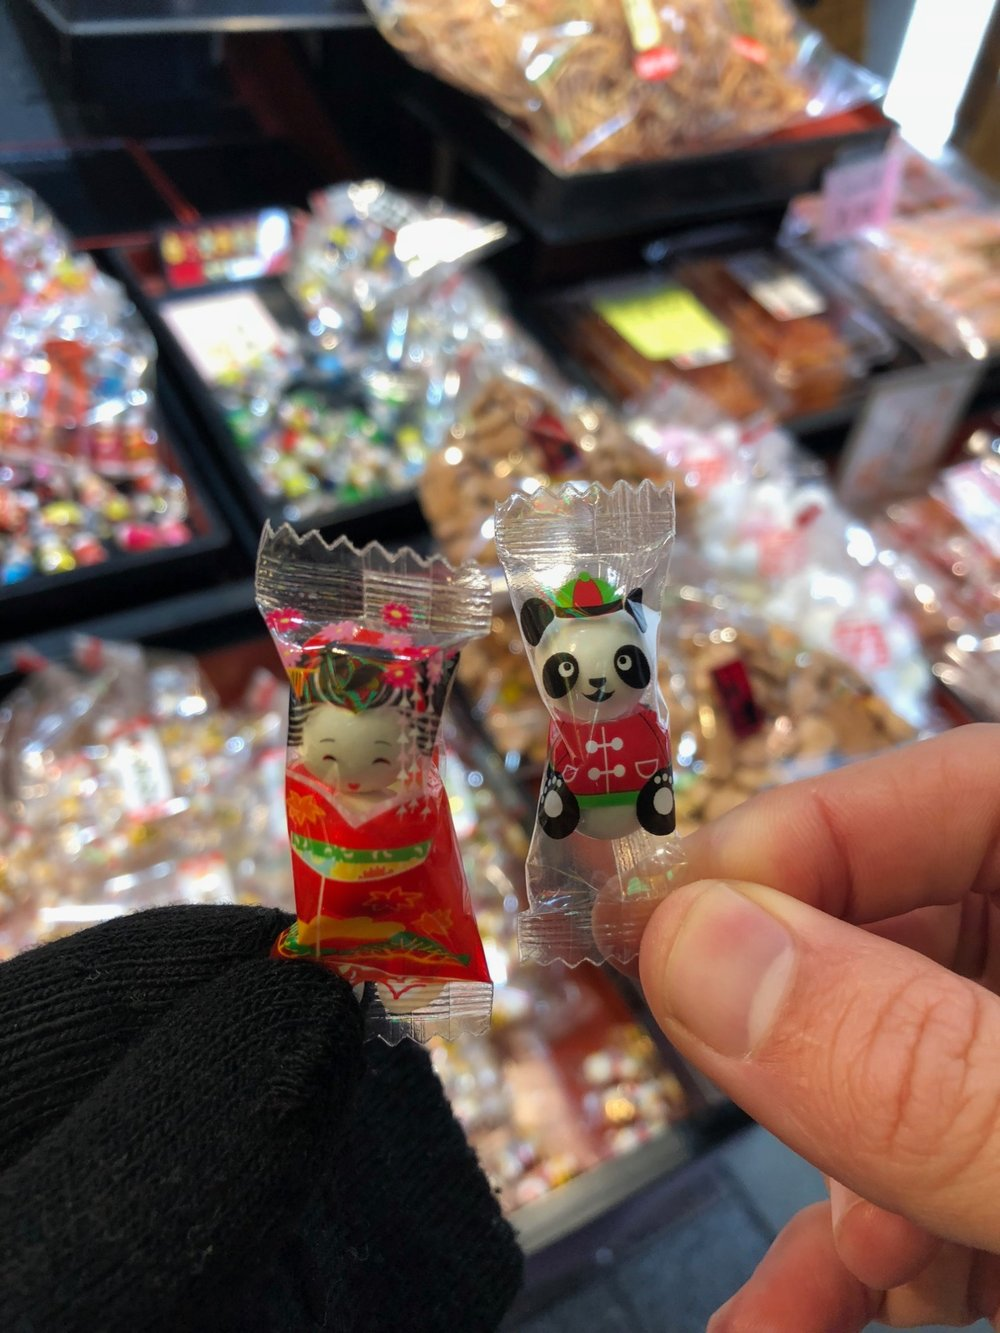 Even tiny little mints are put in the cutest packaging at Nishiki market in Kyoto, Japan. boldlygotravel.com